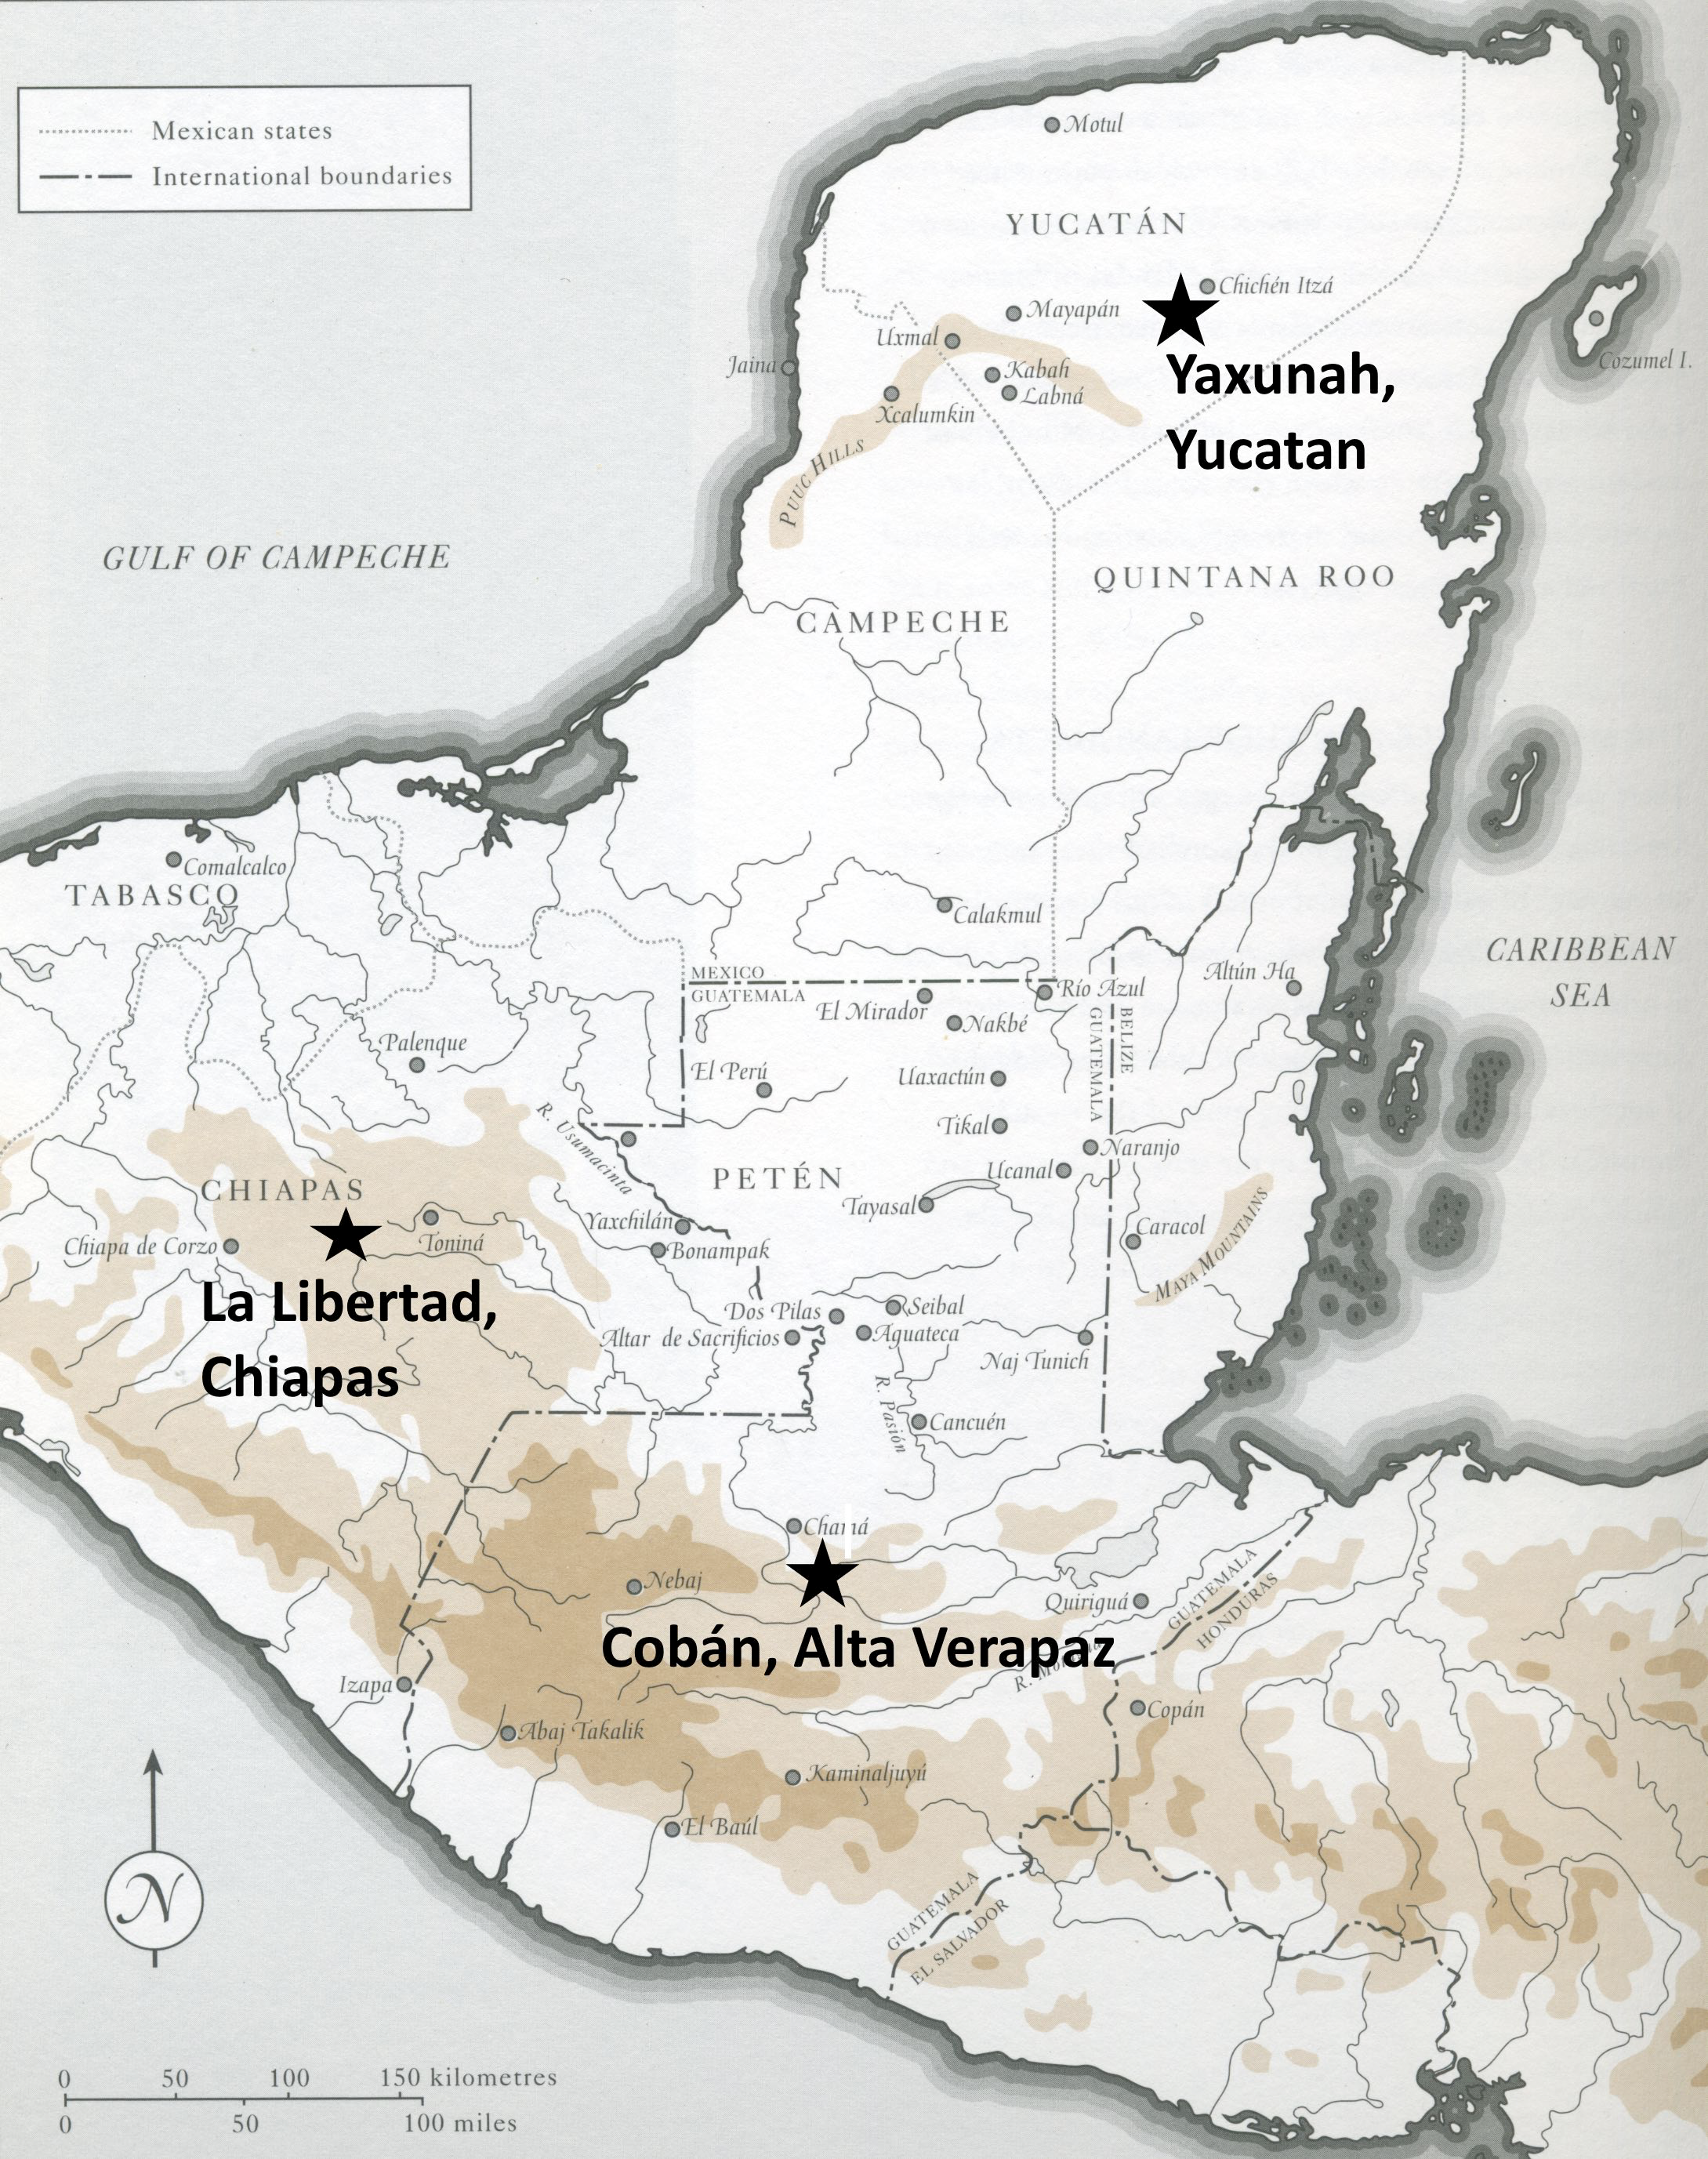 (Mapa cortesia Coe y Kerr: The Maya Scribe and his World)